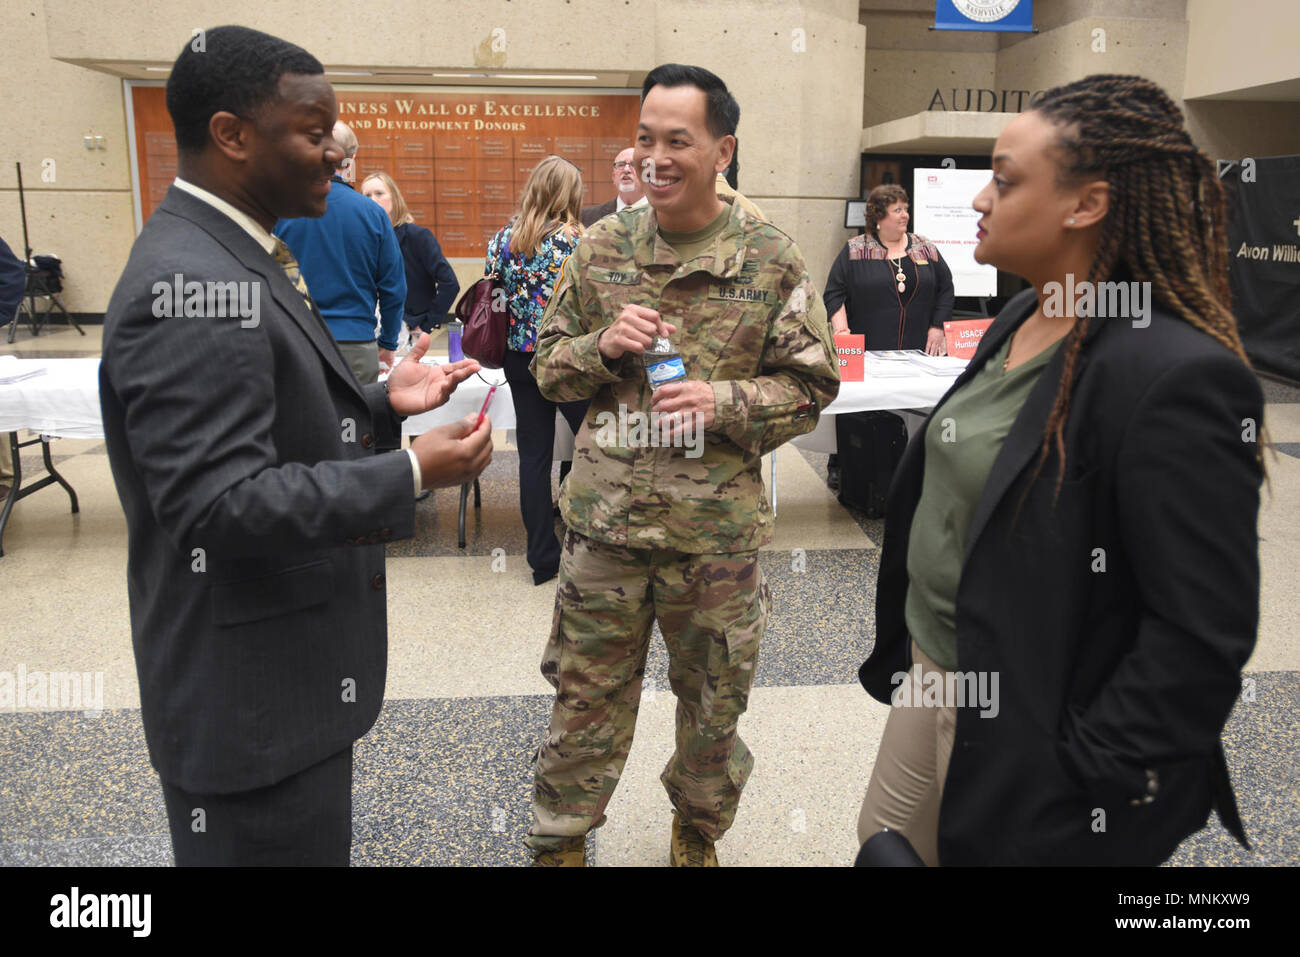 Brig. Gen. Mark Toy, U.S. Army Corps of Engineers Great Lakes and Ohio River Division commander, meets with Christopher Ballard, vice president of operations for Simms Building Group, and Endia Javon, administrative assistant and project administrator for Simms Building Group, during the Business Opportunities Open House, also known as 'BOOH,' at Tennessee State University in Nashville, Tenn., March 15, 2018. (USACE - Stock Image